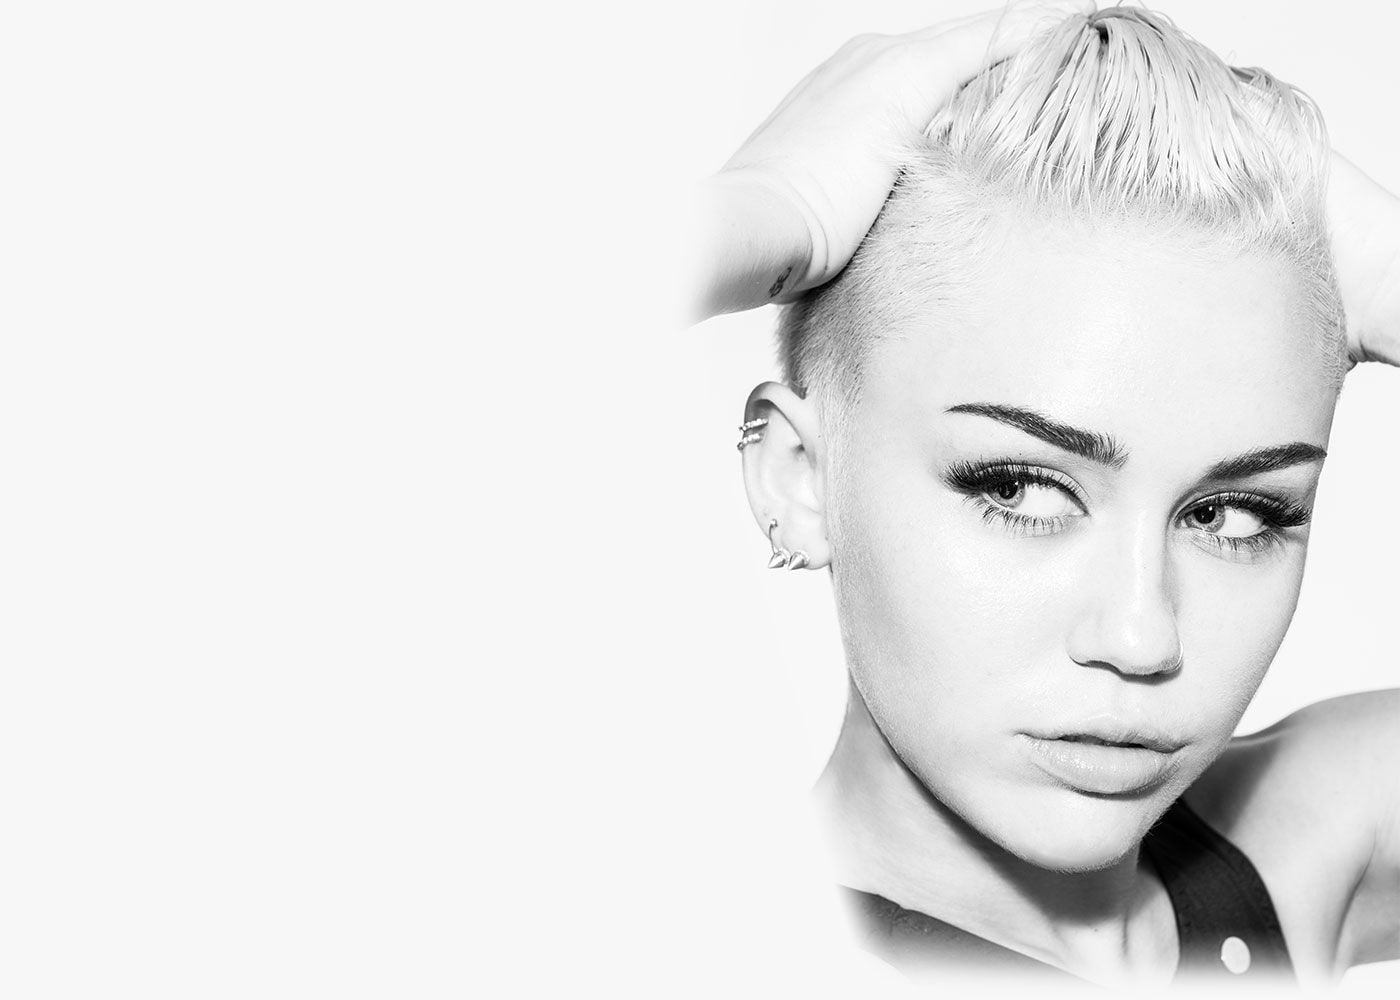 BW Miley Cyrus face pictures